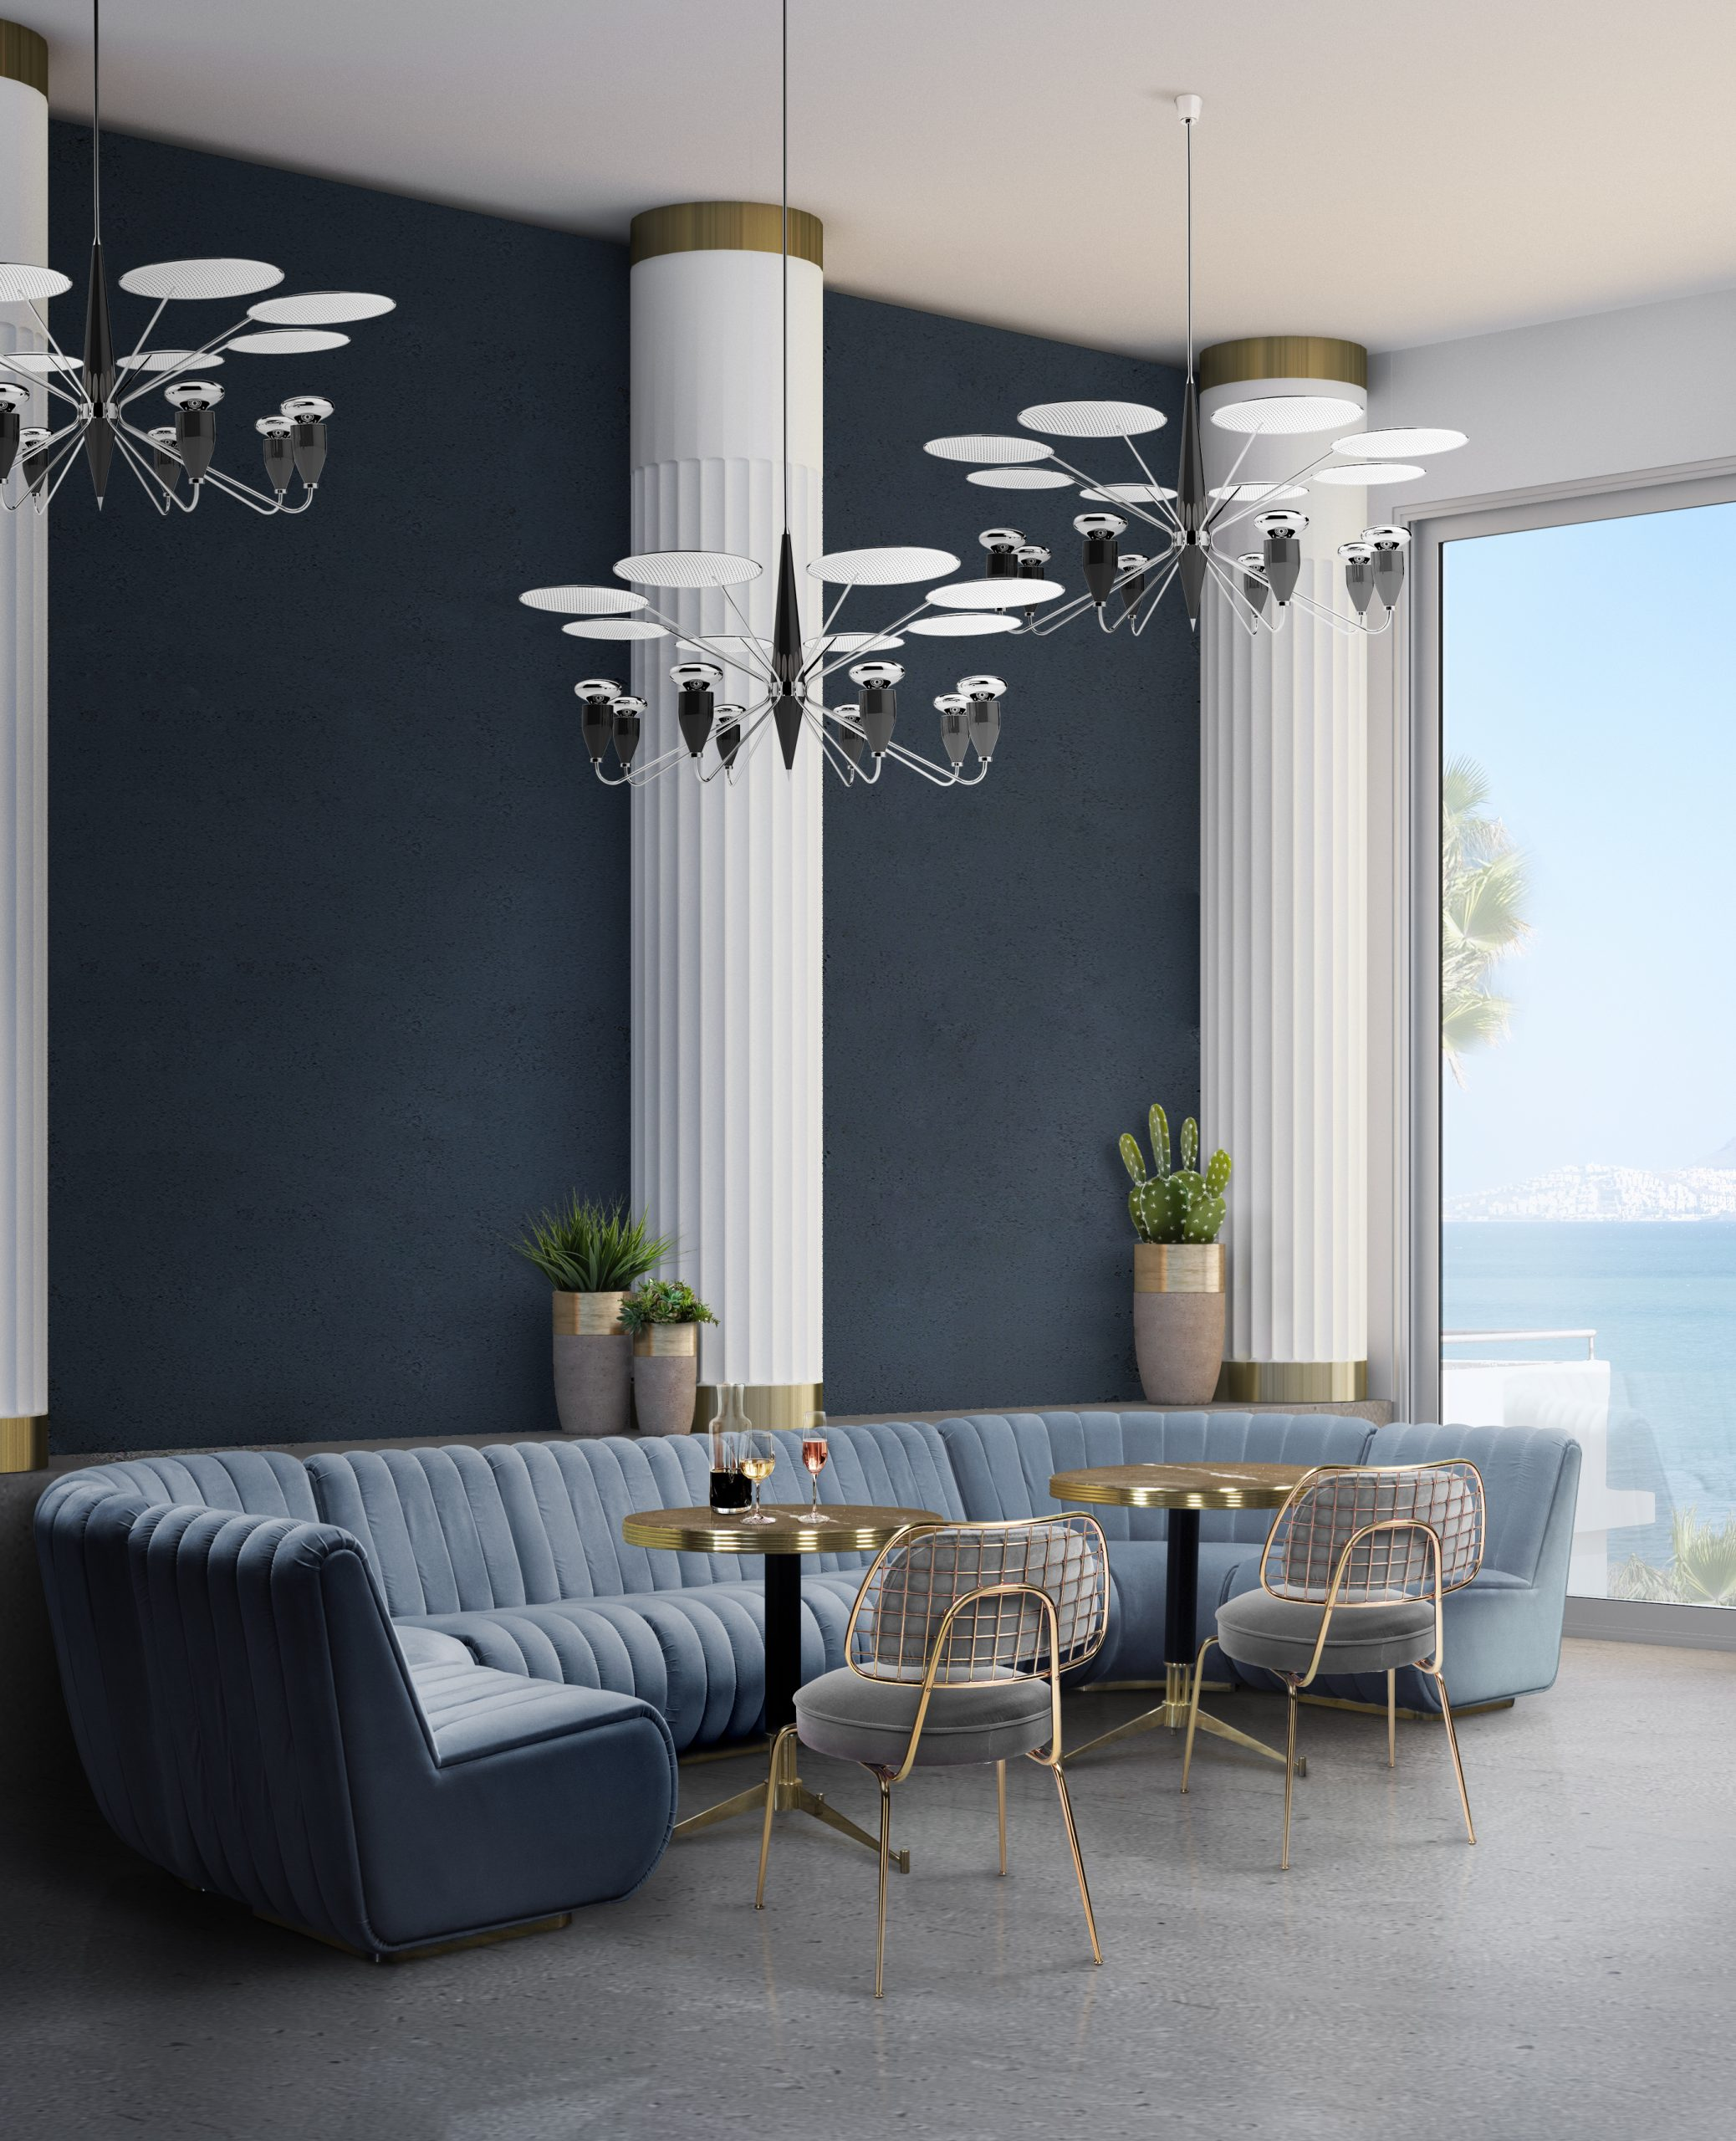 Your Home is The New Hotel & Restaurant: Renovate Your Décor According to Pantone Summer Colors 2020! pantone summer colors Home is The New Hotel & Restaurant: Renovate Your Décor According to Pantone Summer Colors 2020! 23 1 scaled